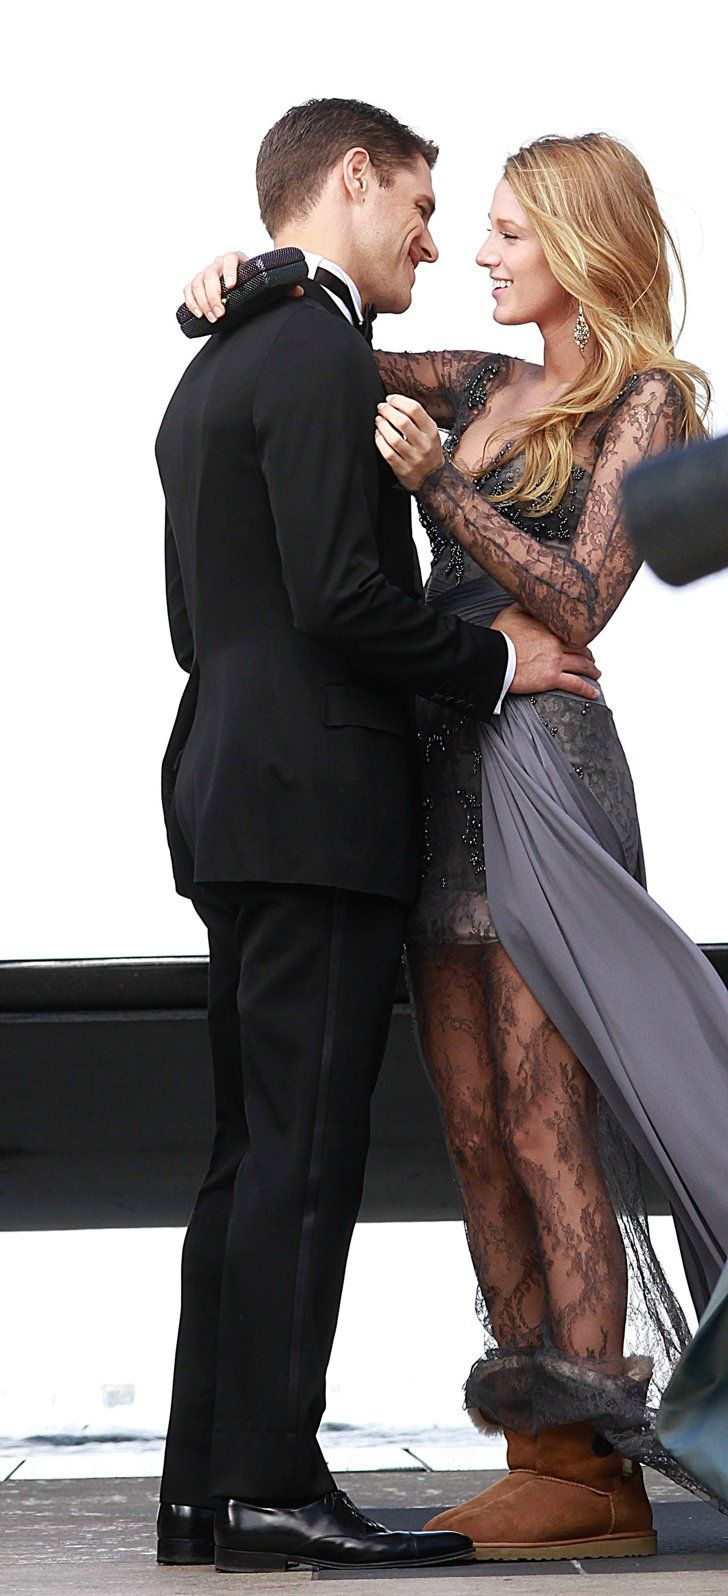 Pin for Later: 40 Times You Totally Wished You Were Blake Lively When She Shared a Kiss With Sam Page